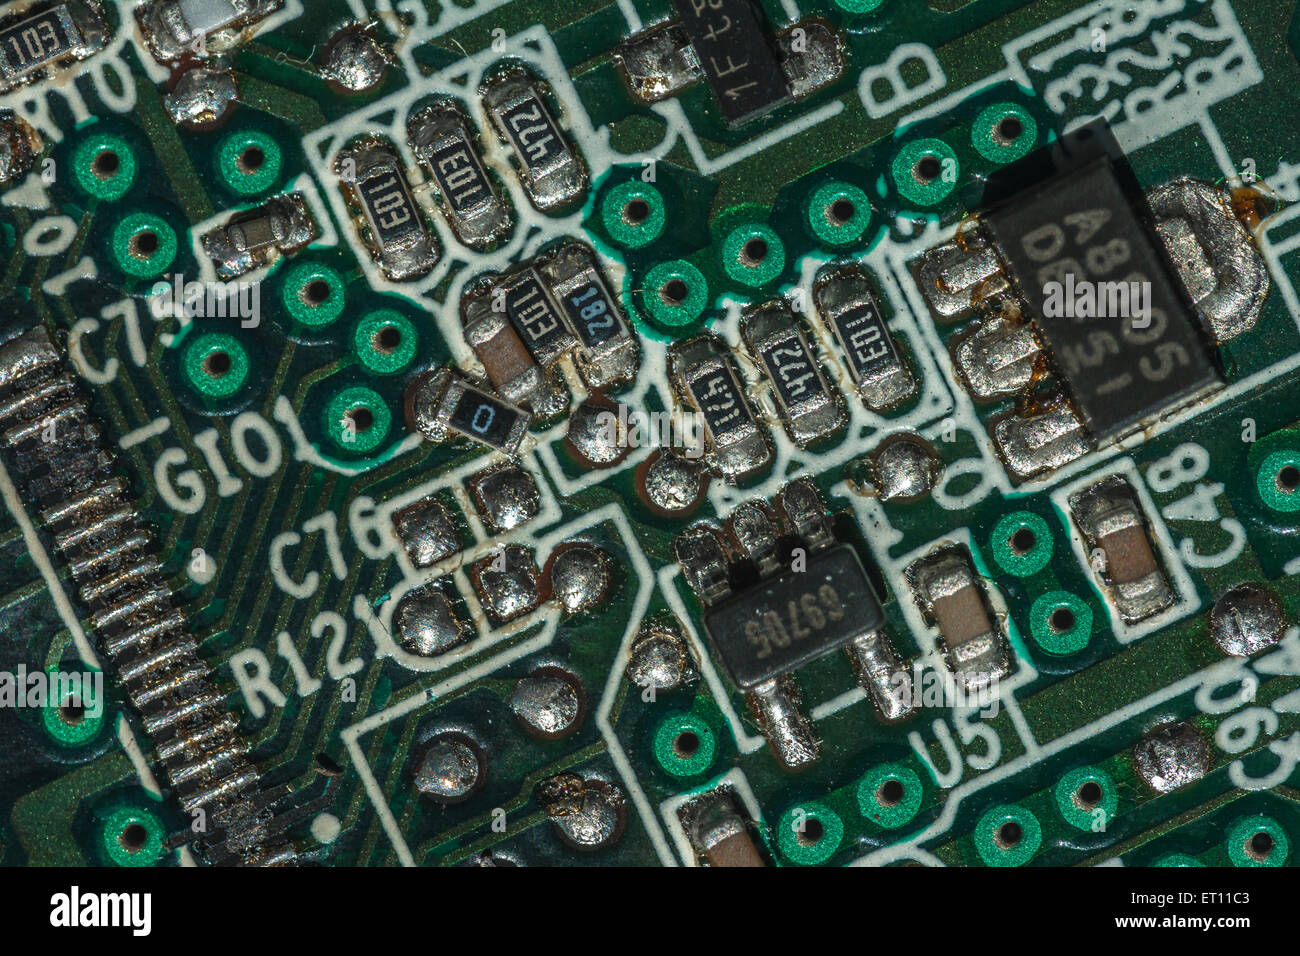 Macro-photo of printed circuit components on a PC motherboard. Wiring inside computer. - Stock Image